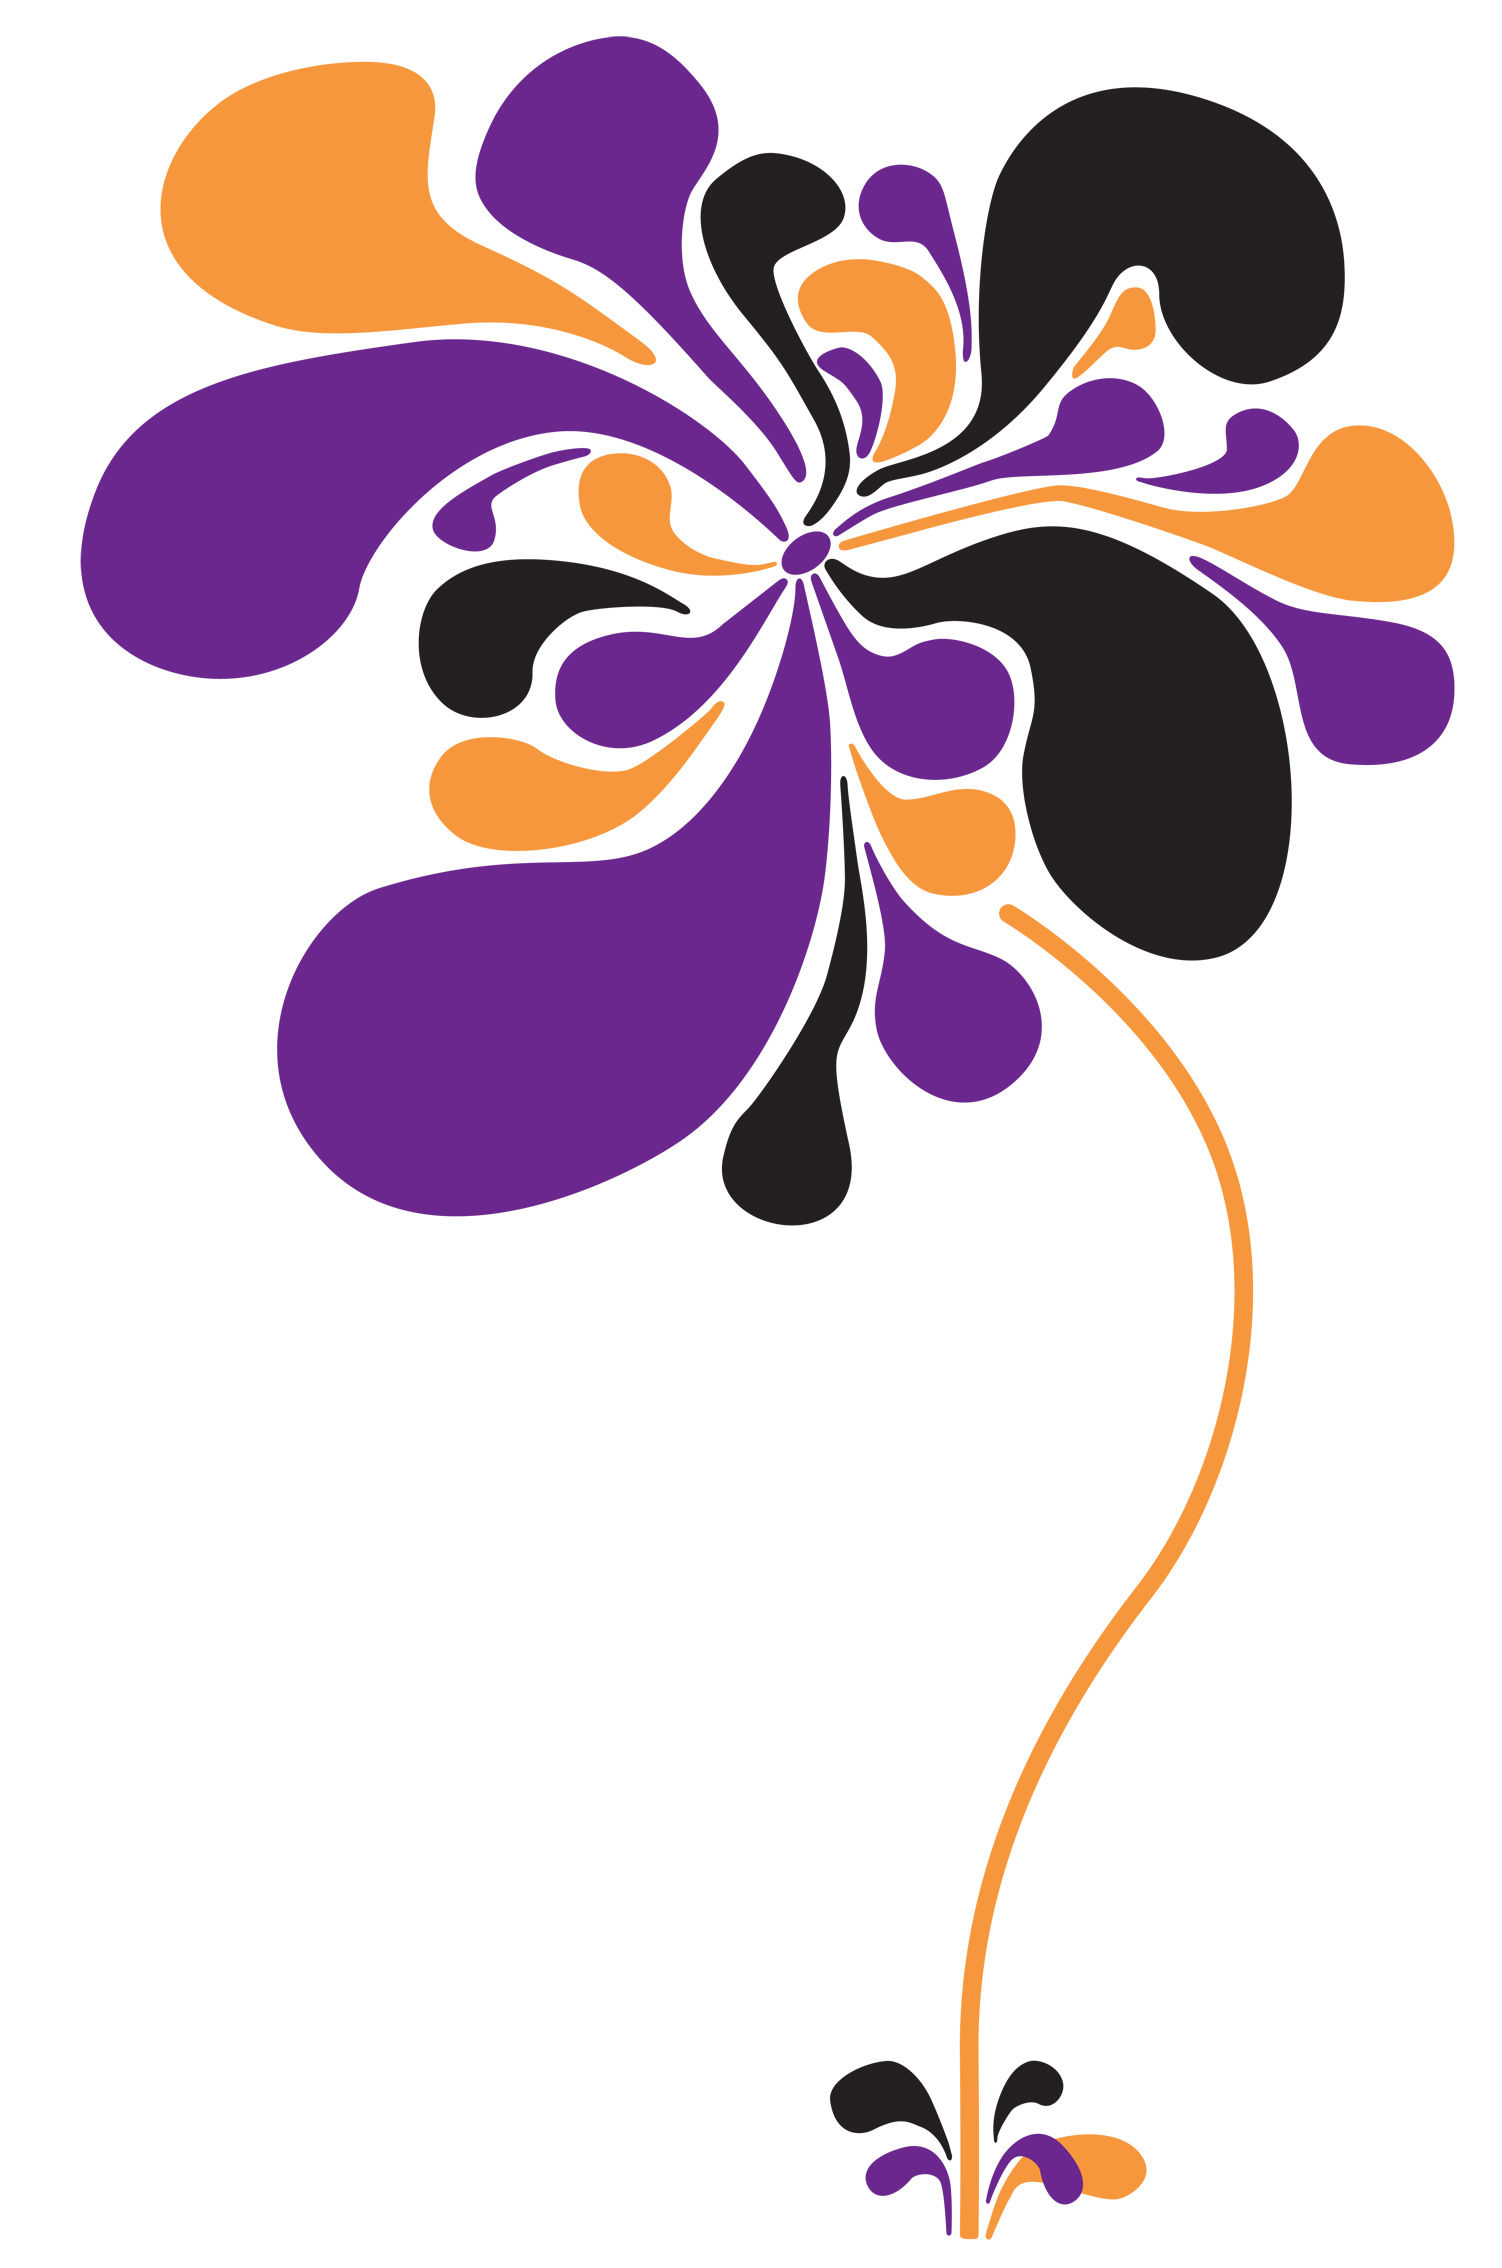 Déco - Stickers, papiers peints & posters - Sticker Pop Flower - Domestic - Orange - Violet - Noir - Vinyle